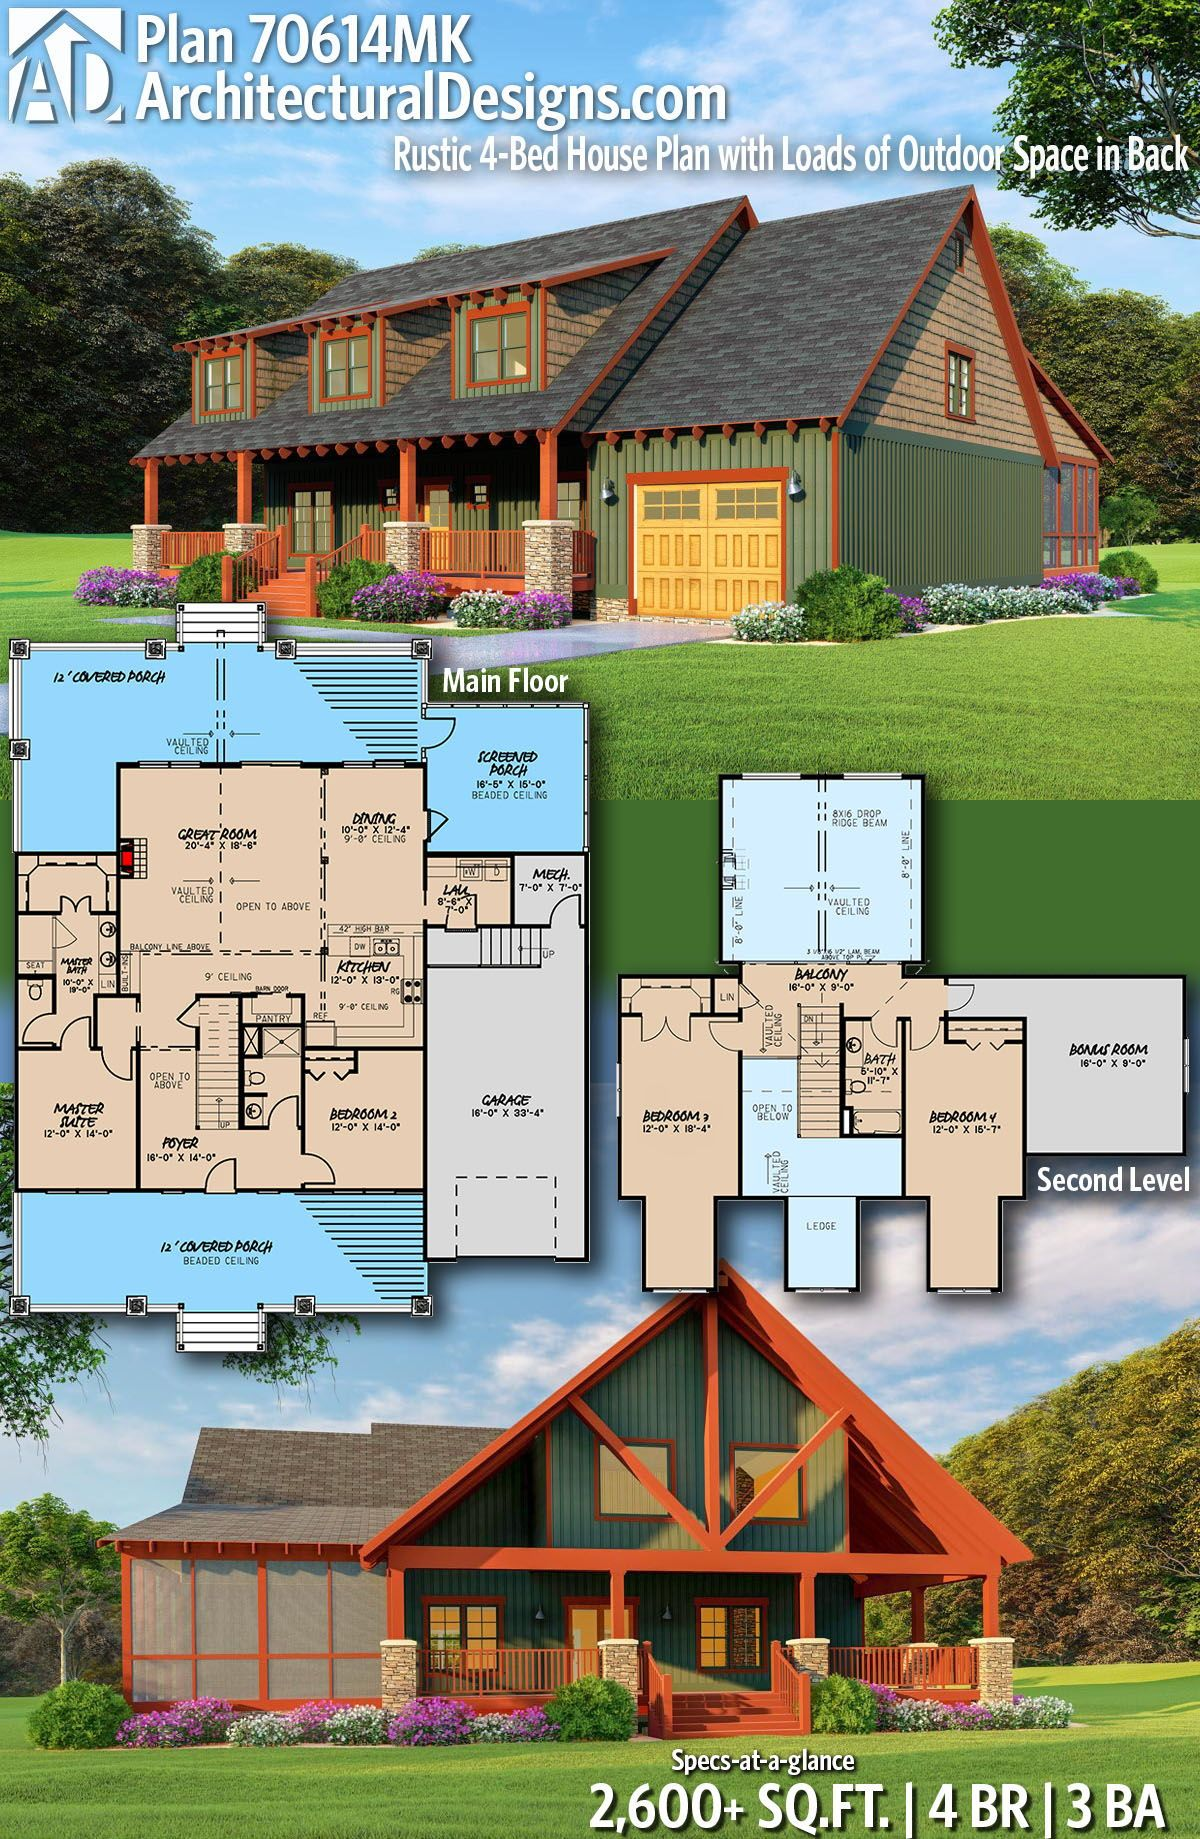 Plan 70614mk Rustic 4 Bed House Plan With Loads Of Outdoor Space In Back Rustic House Plans House Plans Log Home Floor Plans